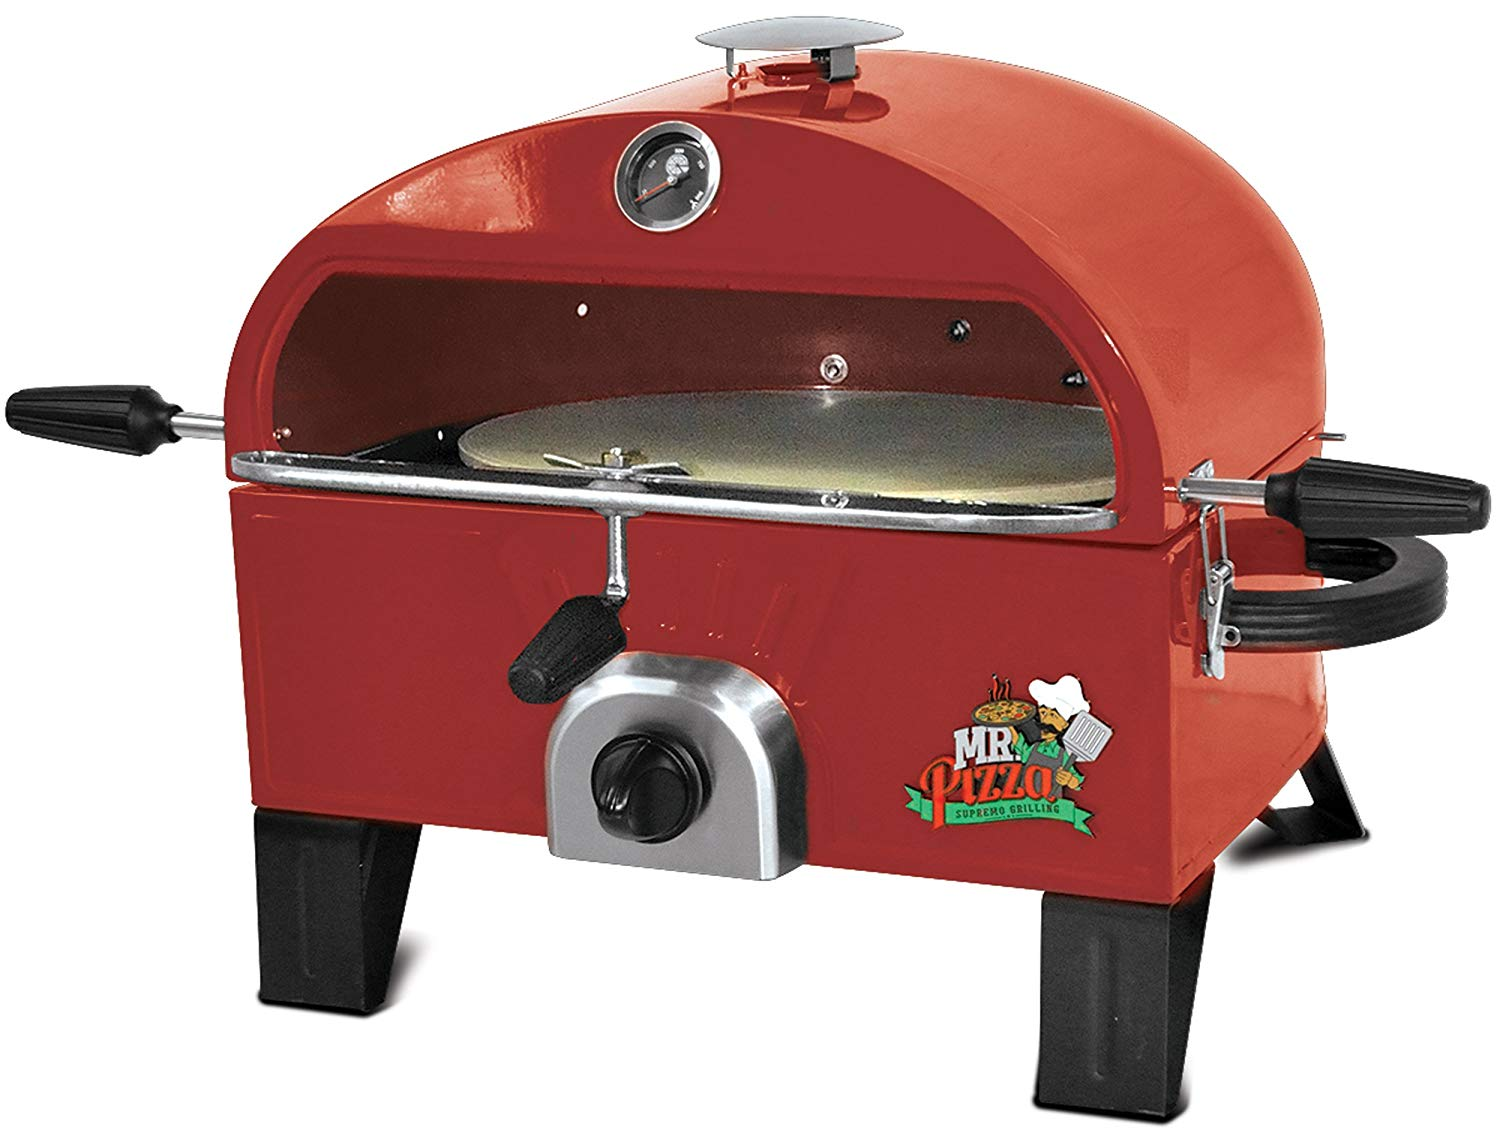 Mr. pizza 1509 oven (gas)